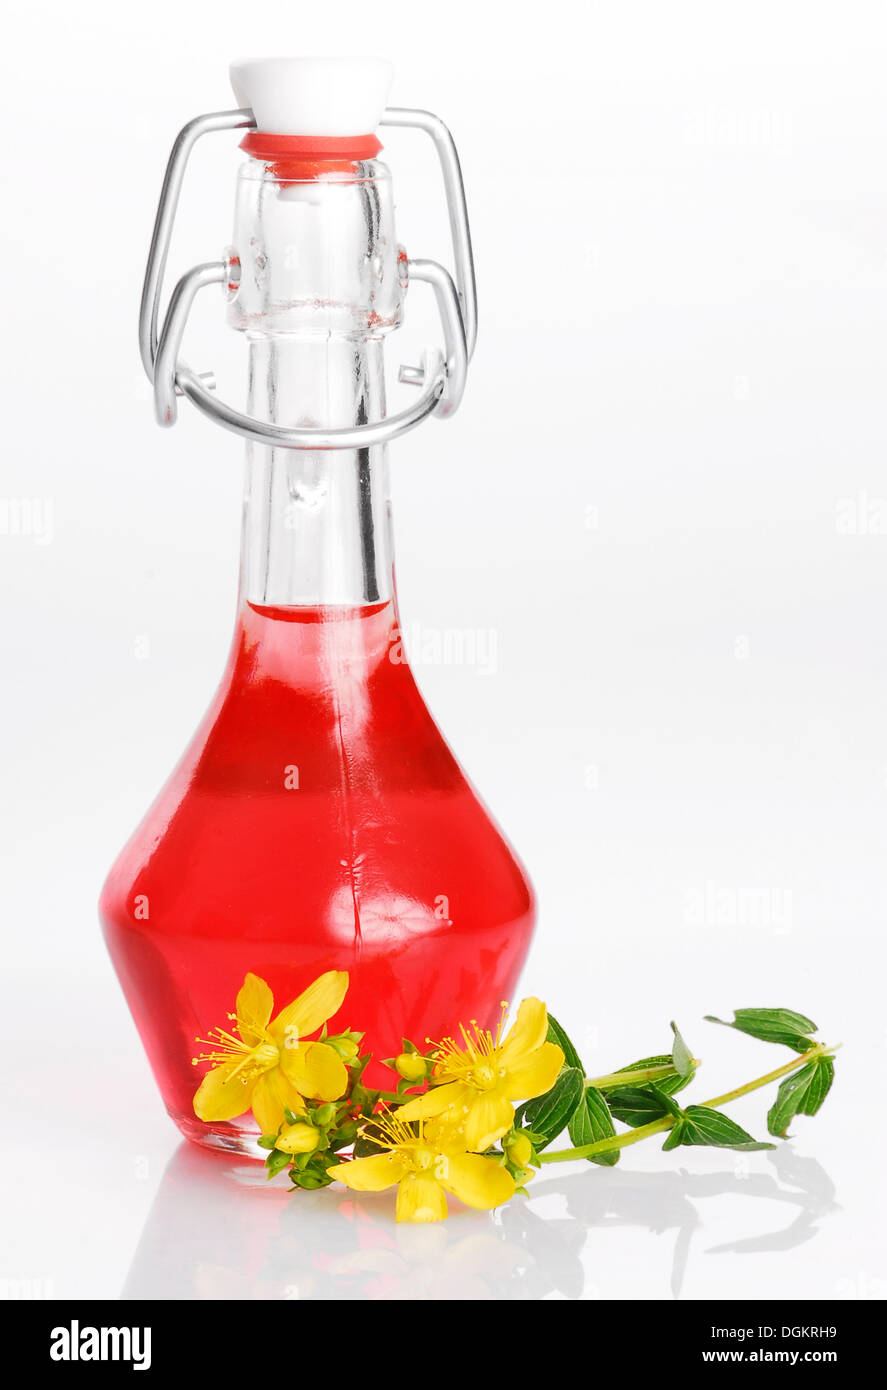 St. John's wort oil with St. John's wort, Tipton's Weed, Chase-devil or Klamath weed (Hypericum perforatum), medicinal plant - Stock Image